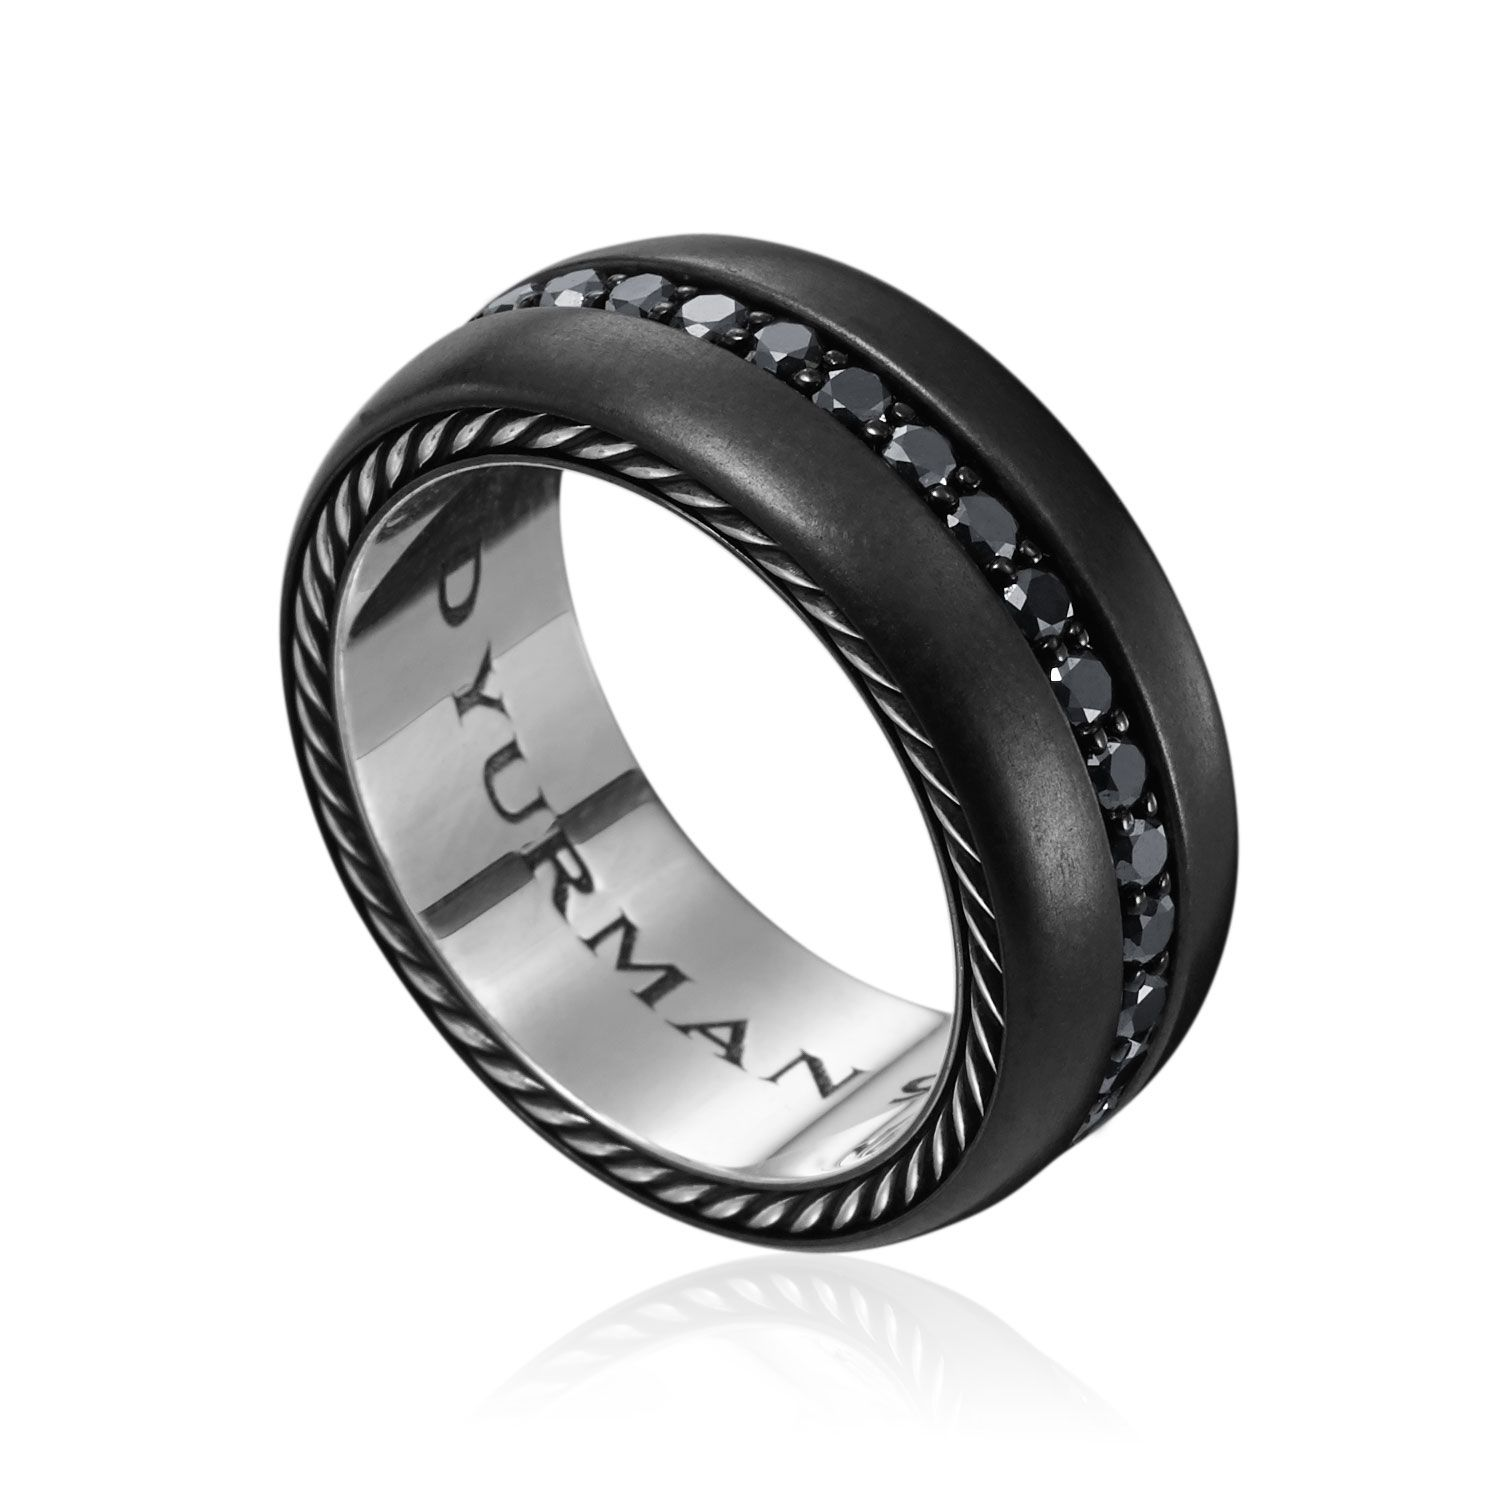 rings size amazon wedding bands price ring black luxury beautiful male titanium full download